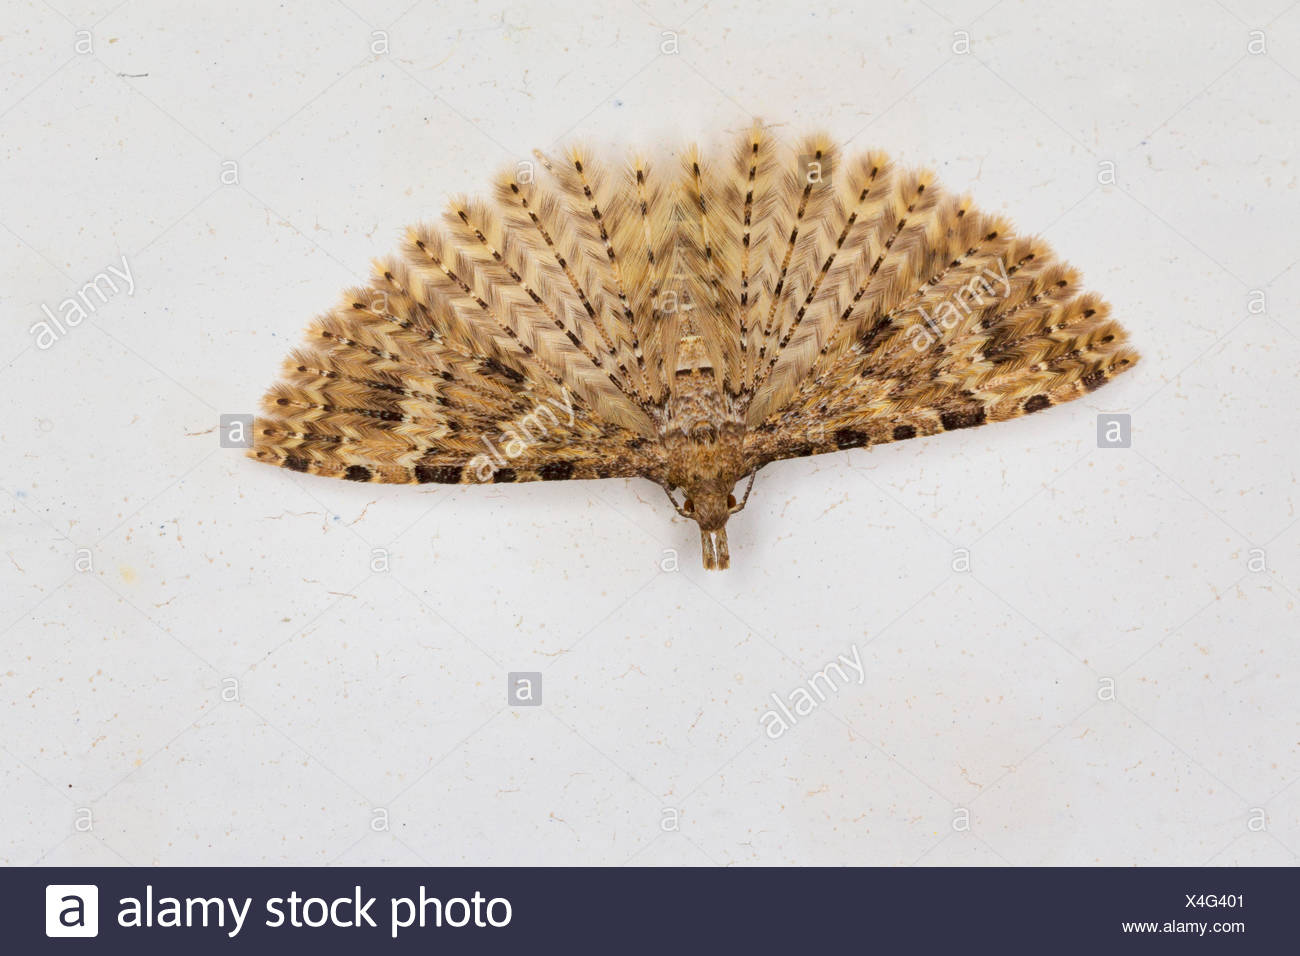 Twenty-plume Moth, Twenty plume moth, Twenty-plumed Moth, Many-plumed moth (Alucita hexadactyla, Alucita polydactyla, Phalaena hexadactyla), hibernation in the house, Germany - Stock Image